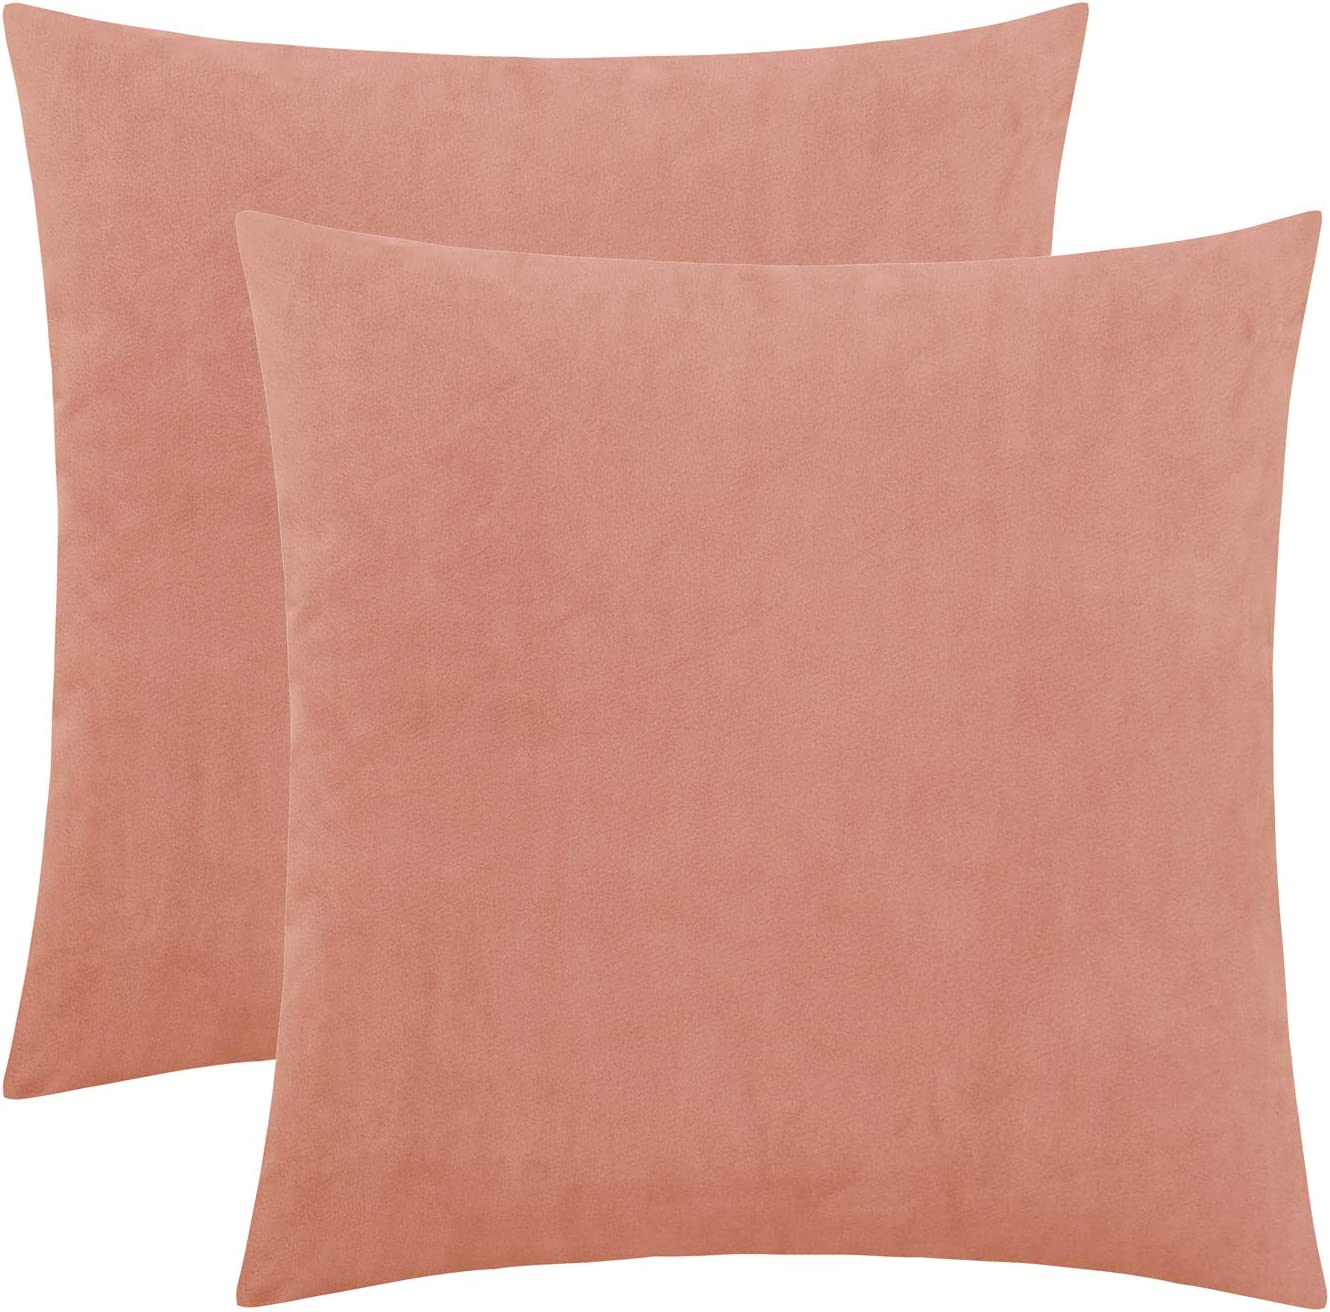 HWY 50 Velvet Soft Comfortable Solid Decorative Throw Pillows Covers Set Cushion Cases for Couch Sofa Living Room 20 x 20 inch Light Pink Pack of 2